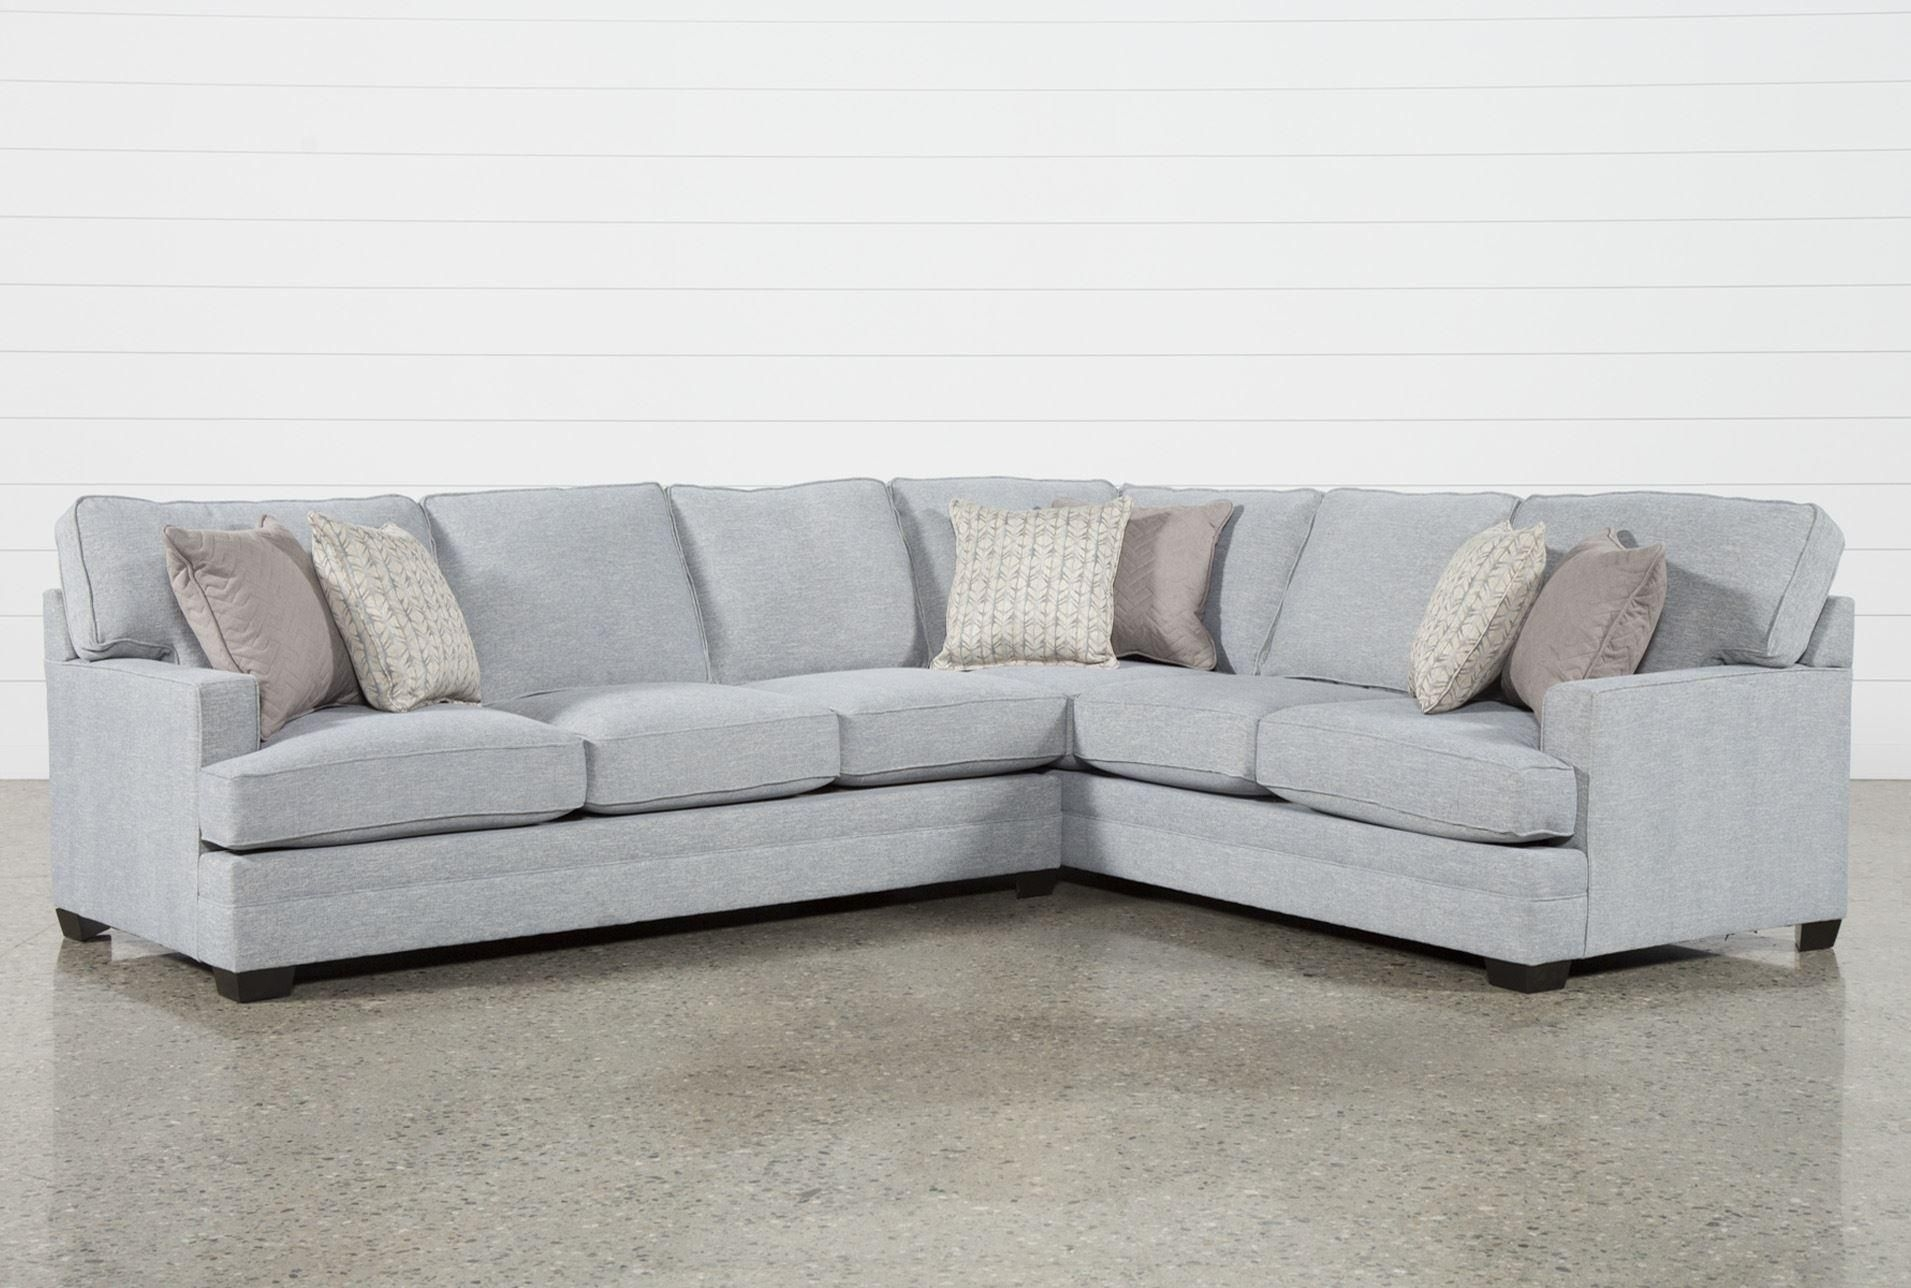 Josephine 2 Piece Sectional W/laf Sofa   For The Home   Pinterest Inside Adeline 3 Piece Sectionals (Image 17 of 25)